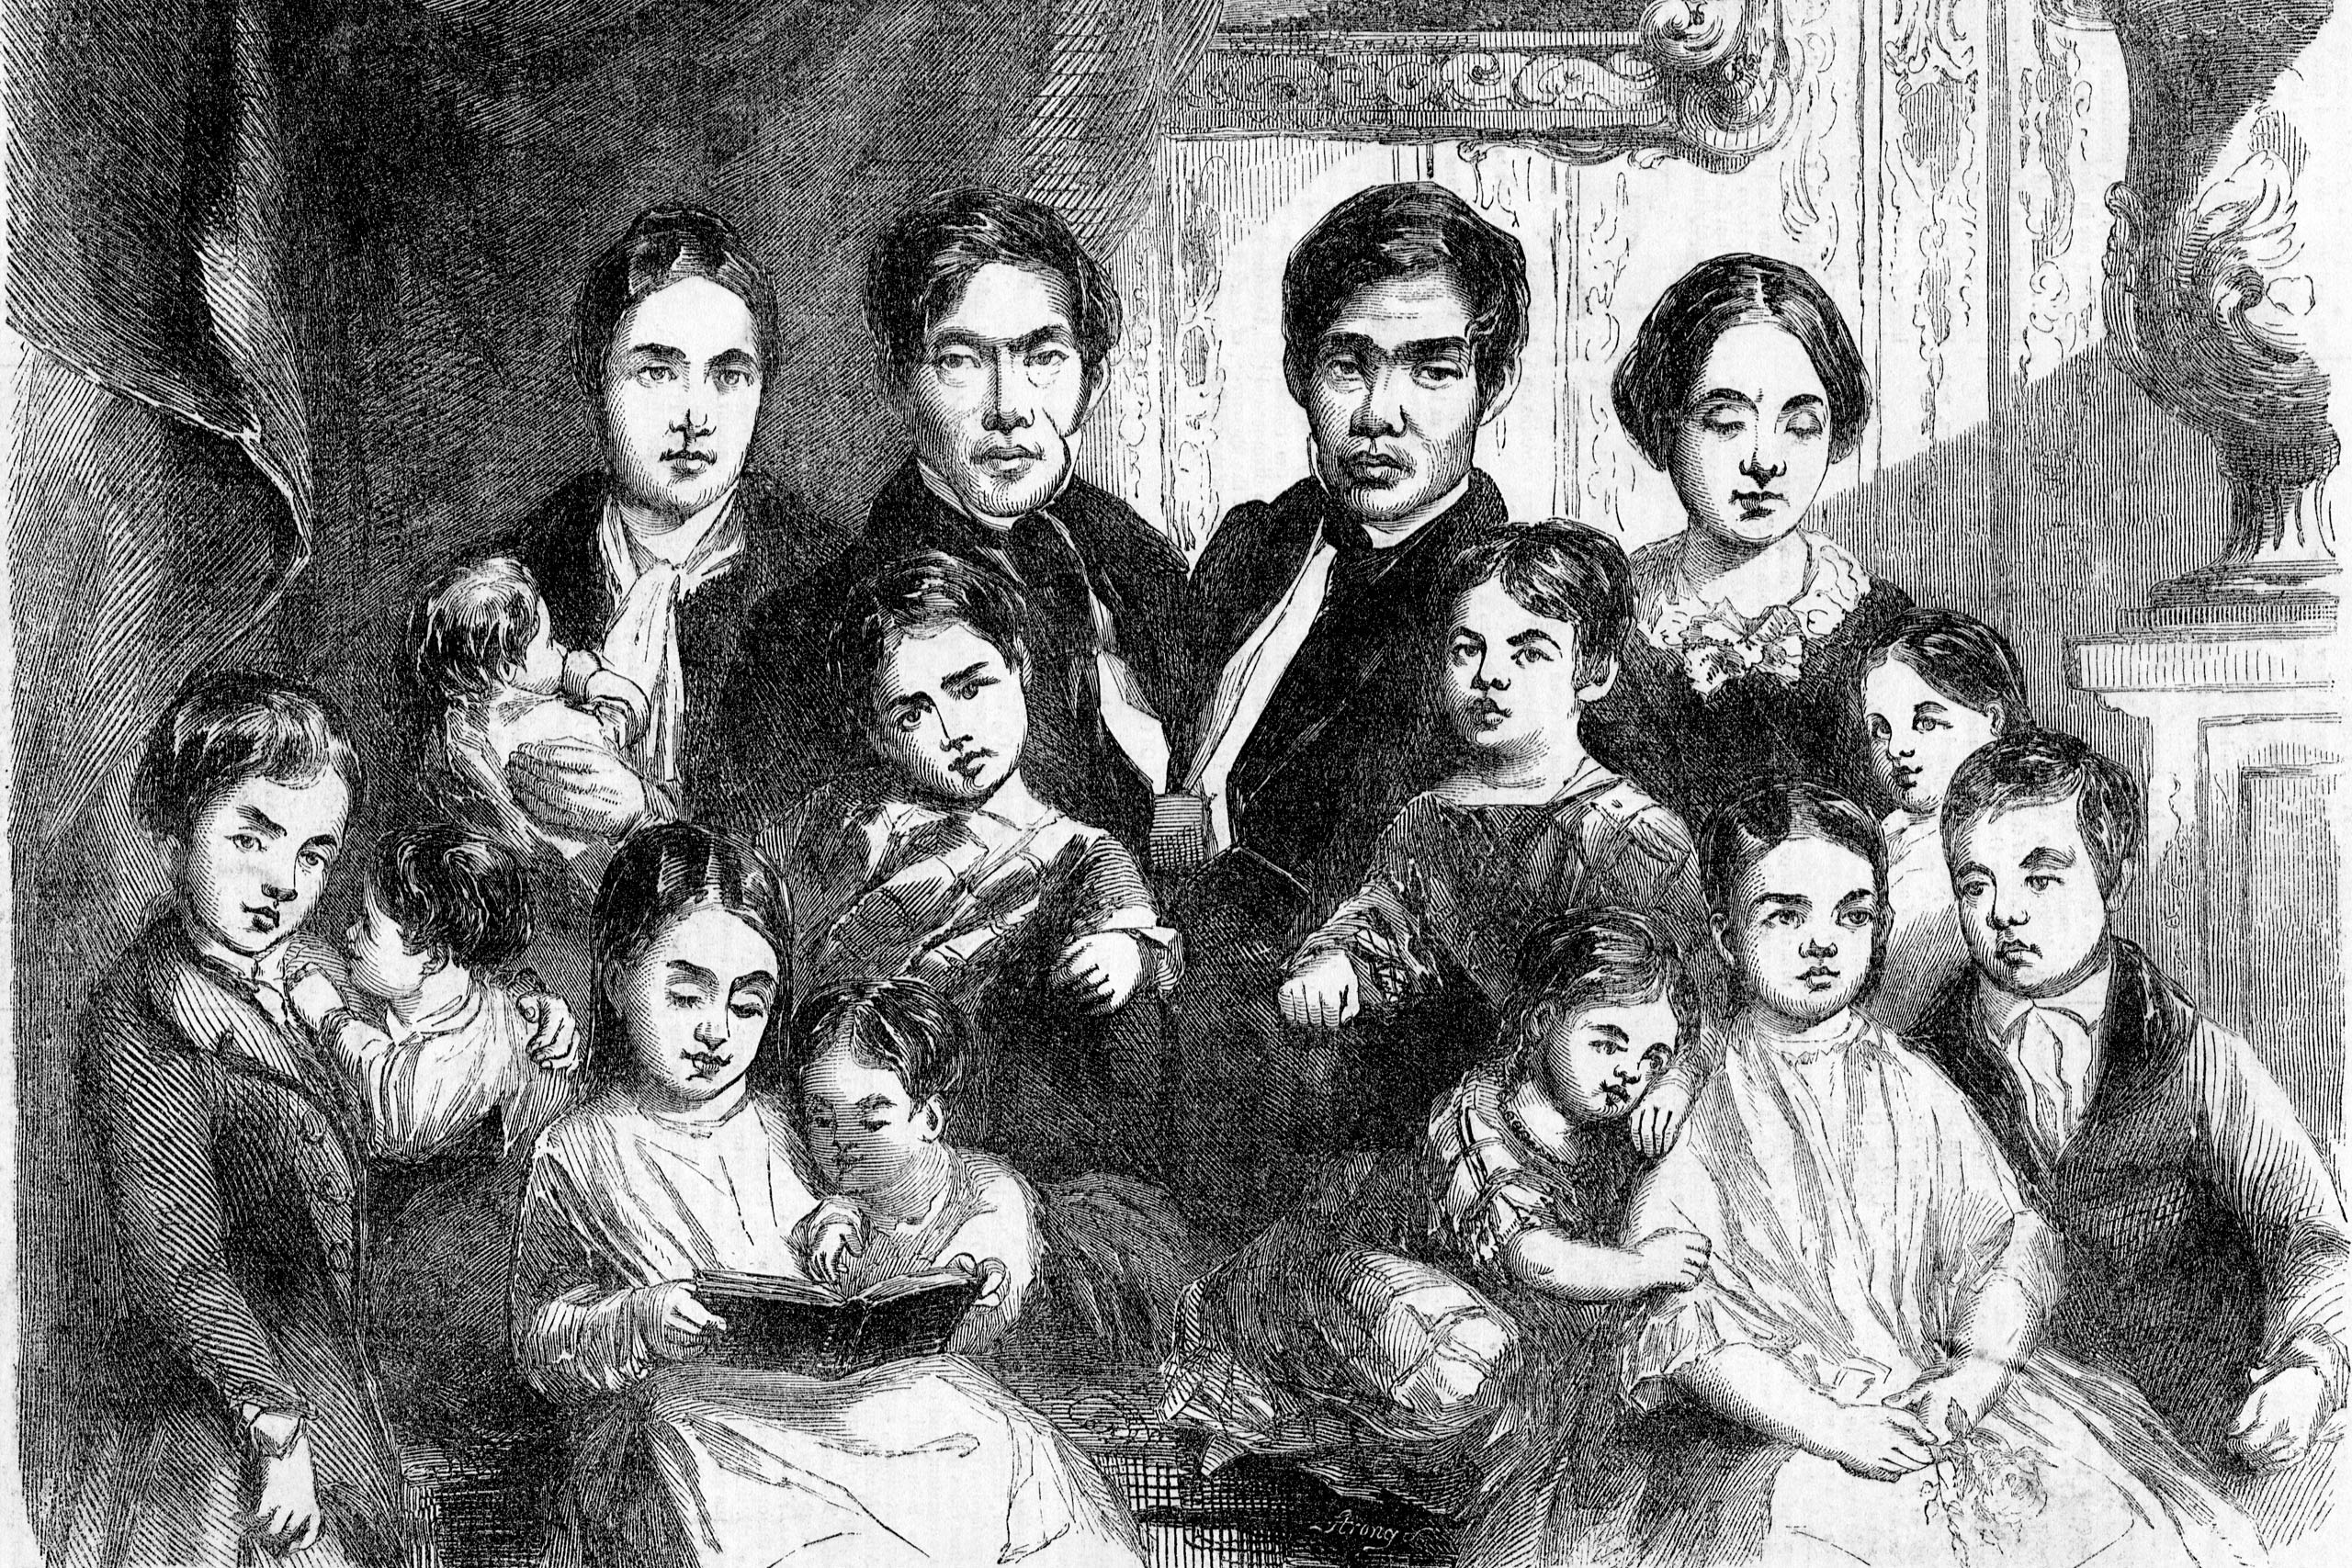 Chang and Eng With Their Families